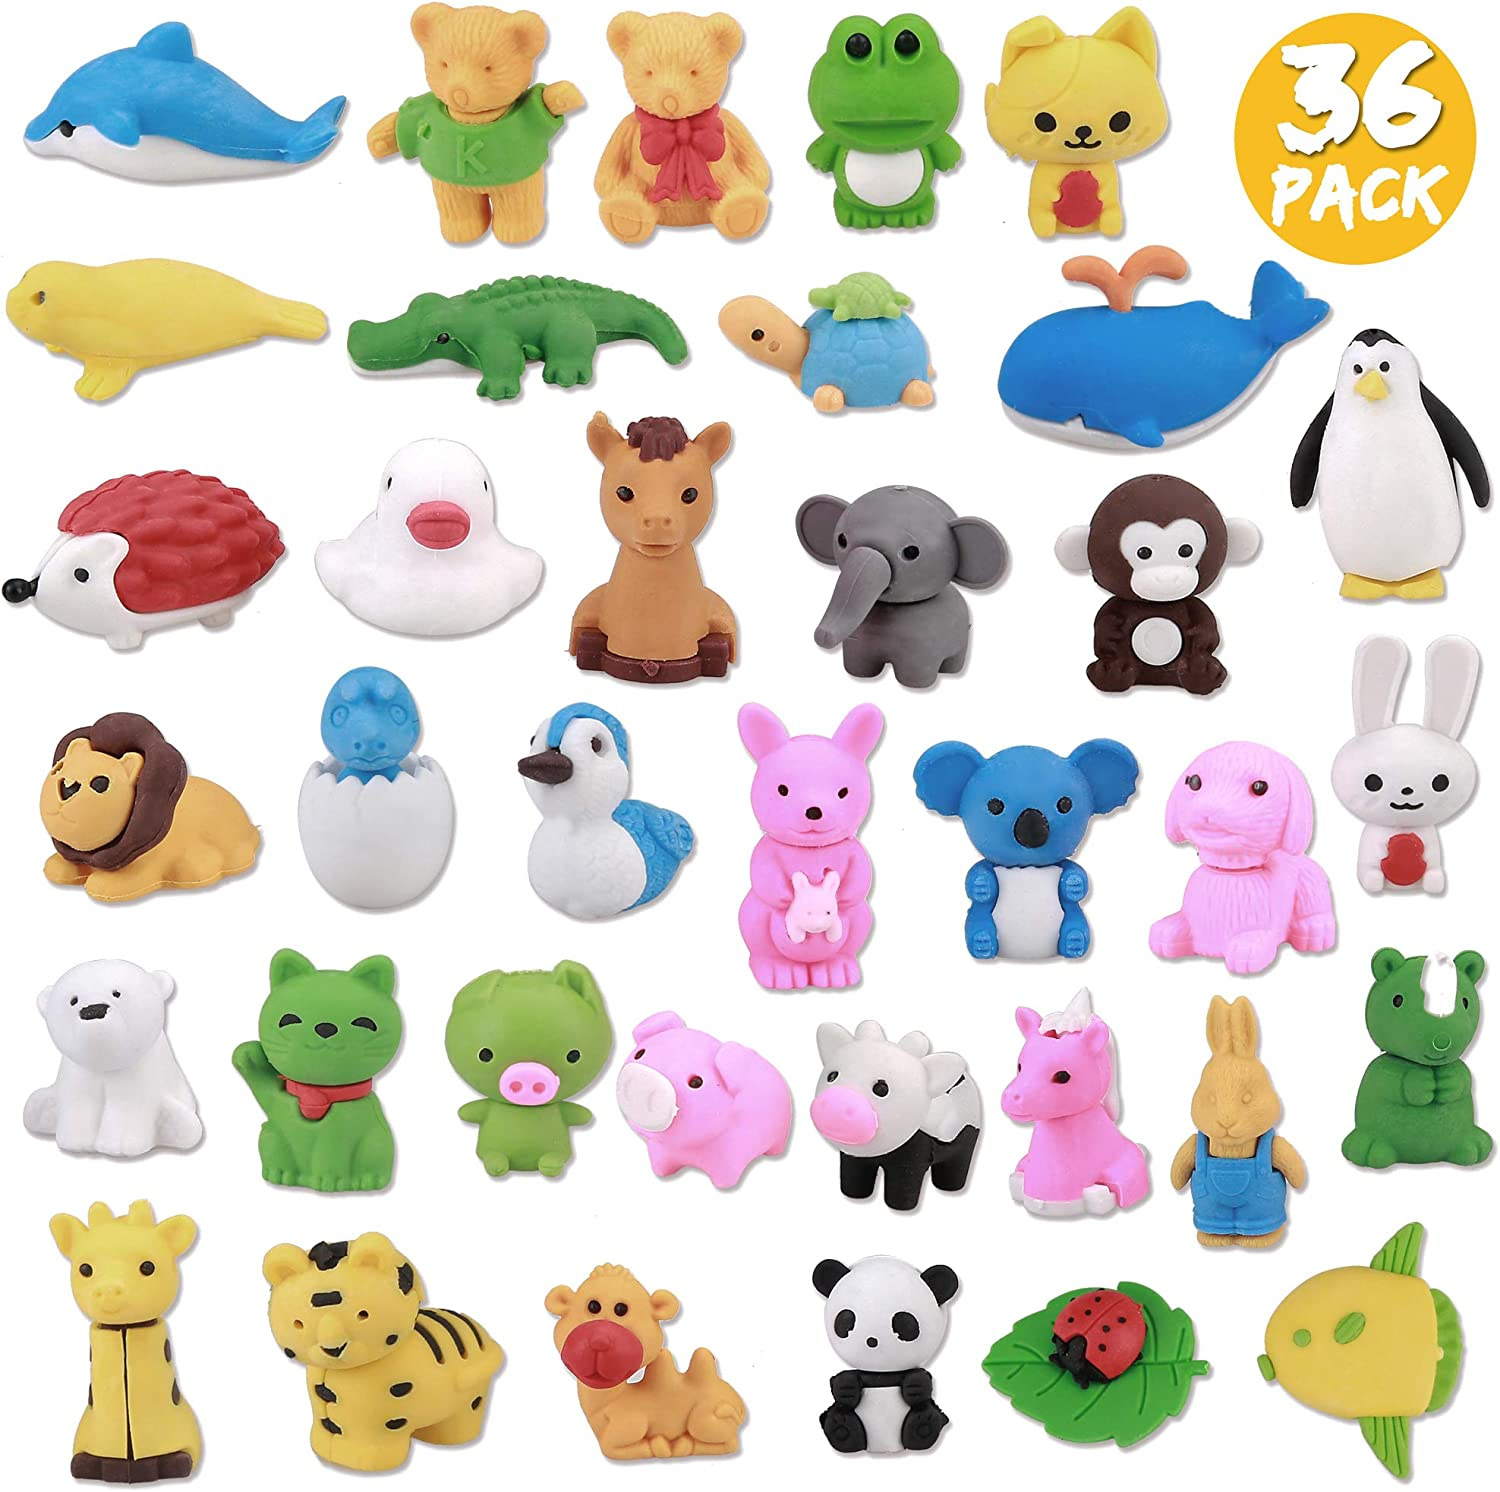 Greentime 36 Little Animal Erasers Bulk, Puzzle Toys Erasers Assembly Animals Erasers 3D Mini Erasers for Back-to-school Gifts Classroom Supplies Party Favors Games Prize Children's Day Gifts for Kids